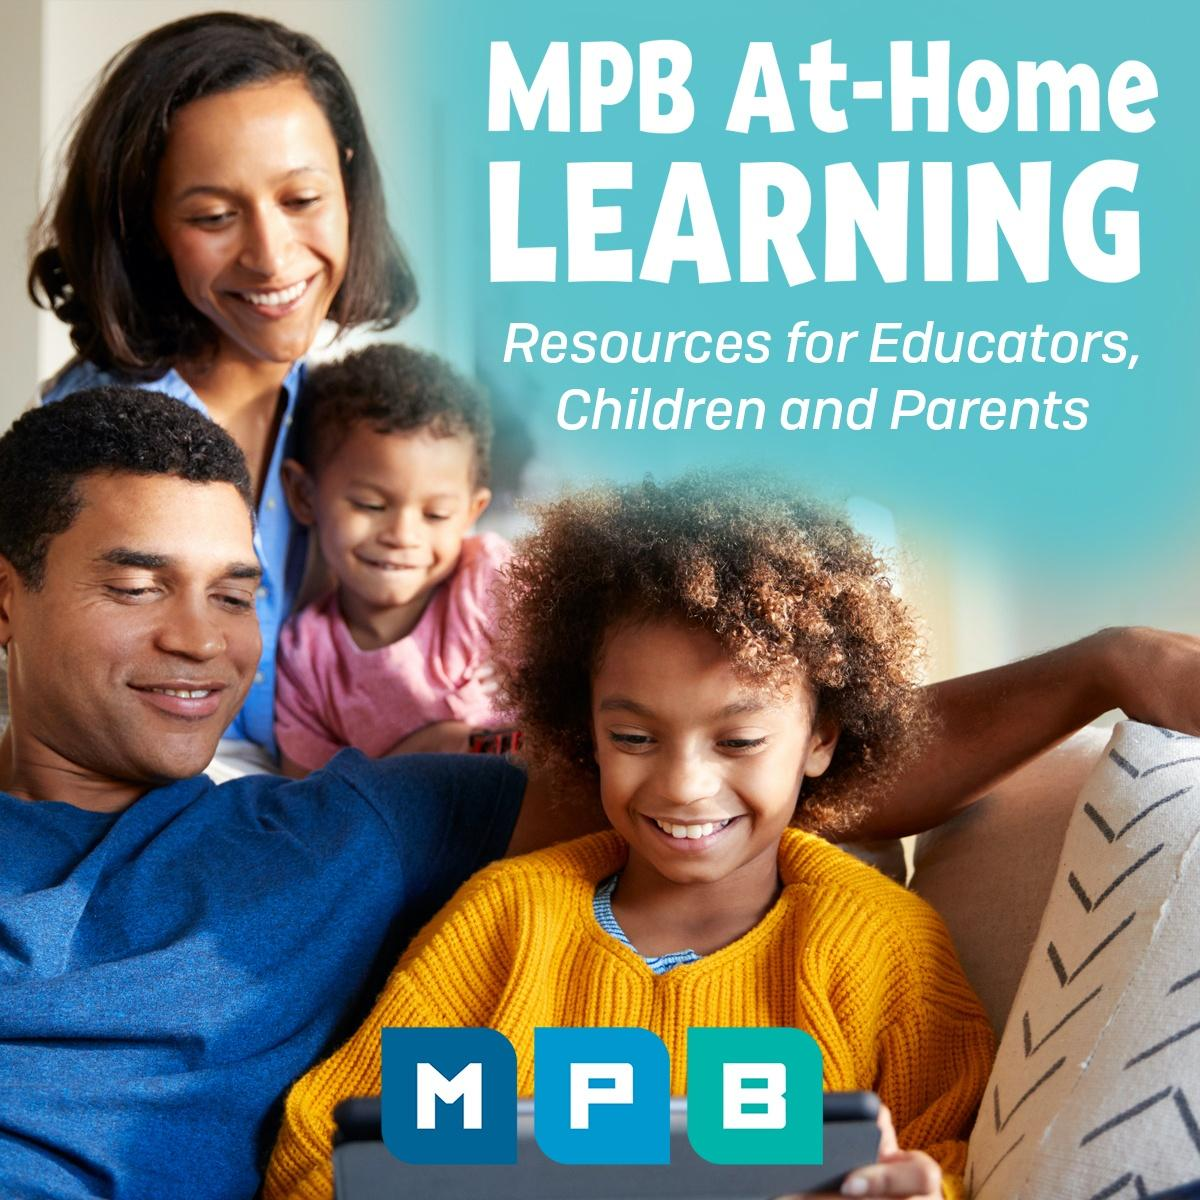 Parents using distance learning tools with children